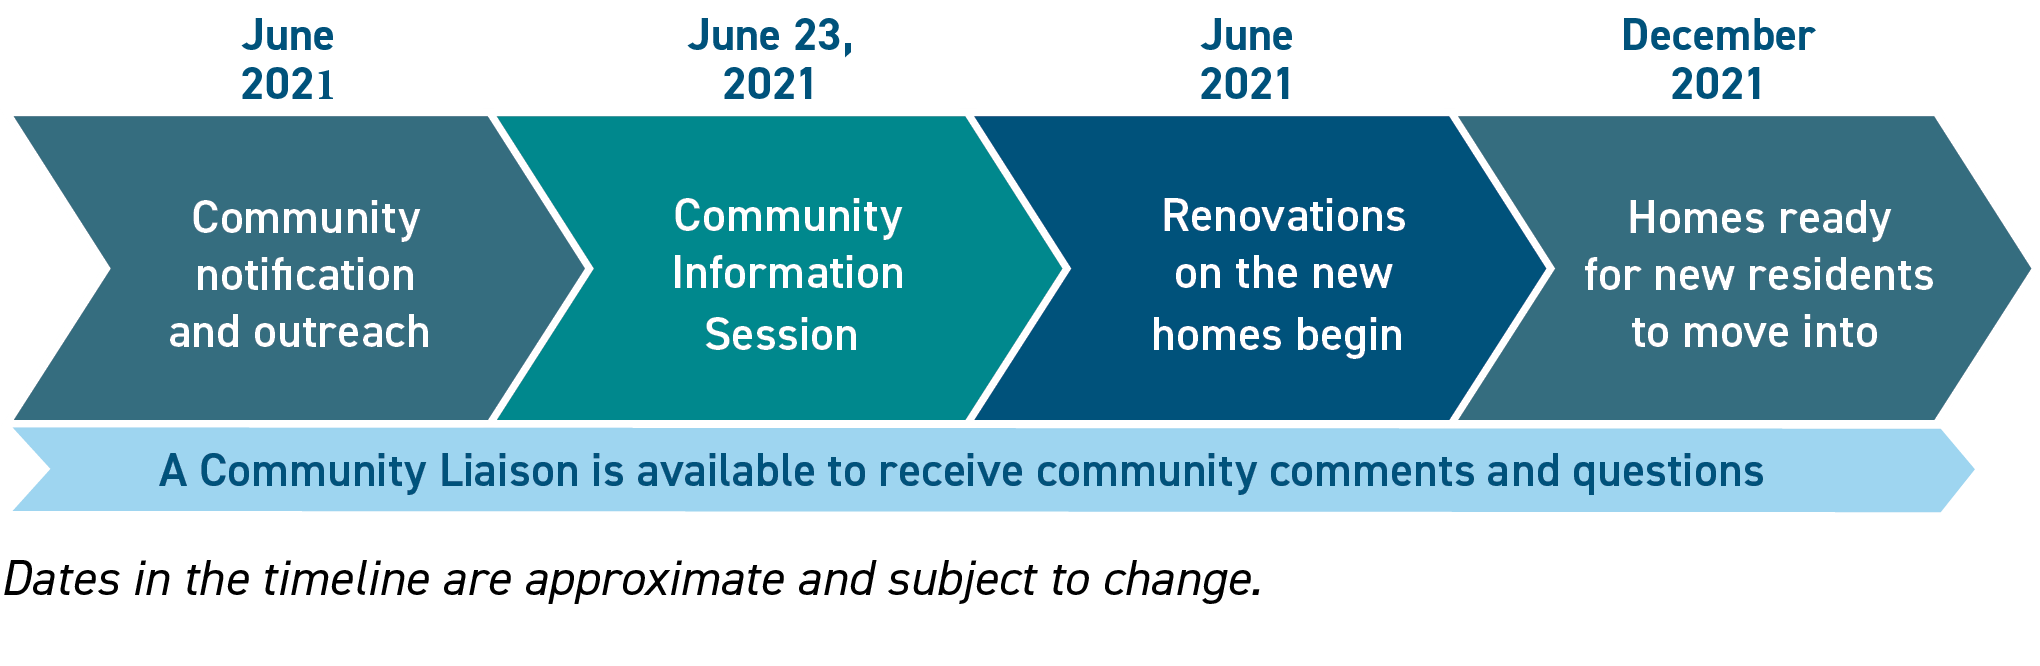 A graph showing the timeline for this project. Community notification starts in June 2021, followed by a community information session on June 23, 2021. Renovation on the new homes also begins in June 2021 and tenants are expected to move in in December 2021.